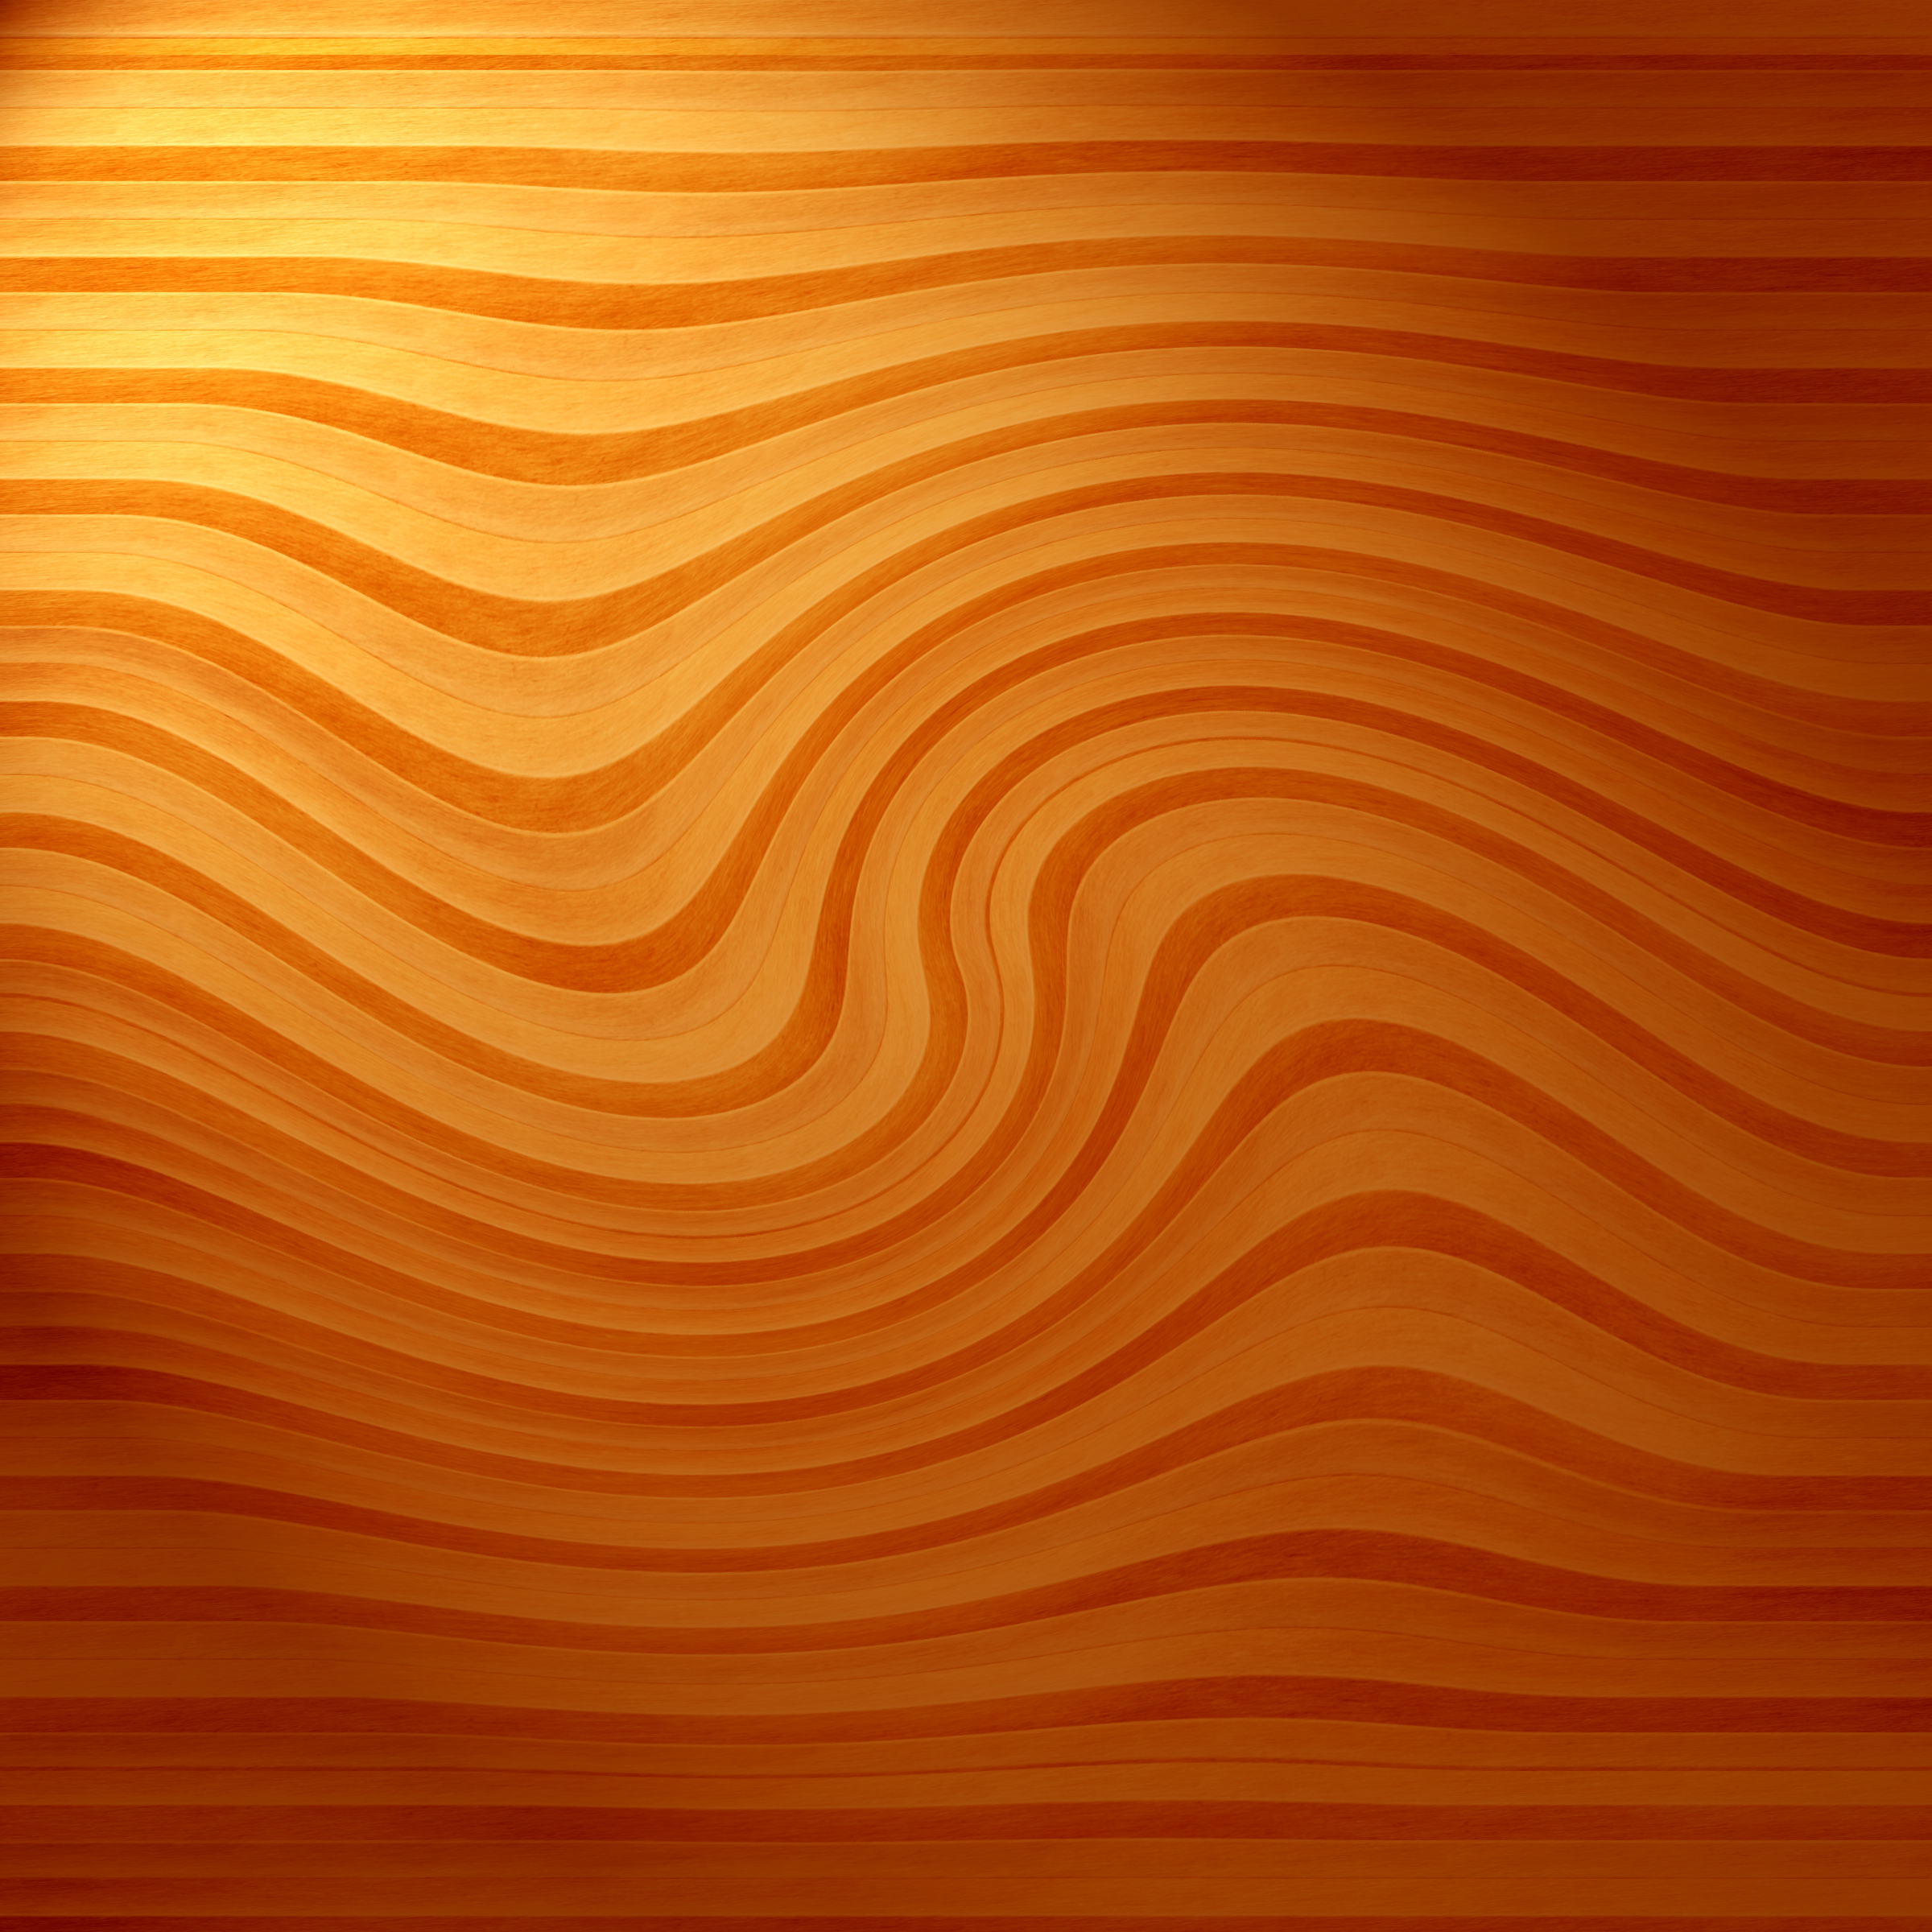 Wood, Abstract, Surface, Oak, Old, HQ Photo